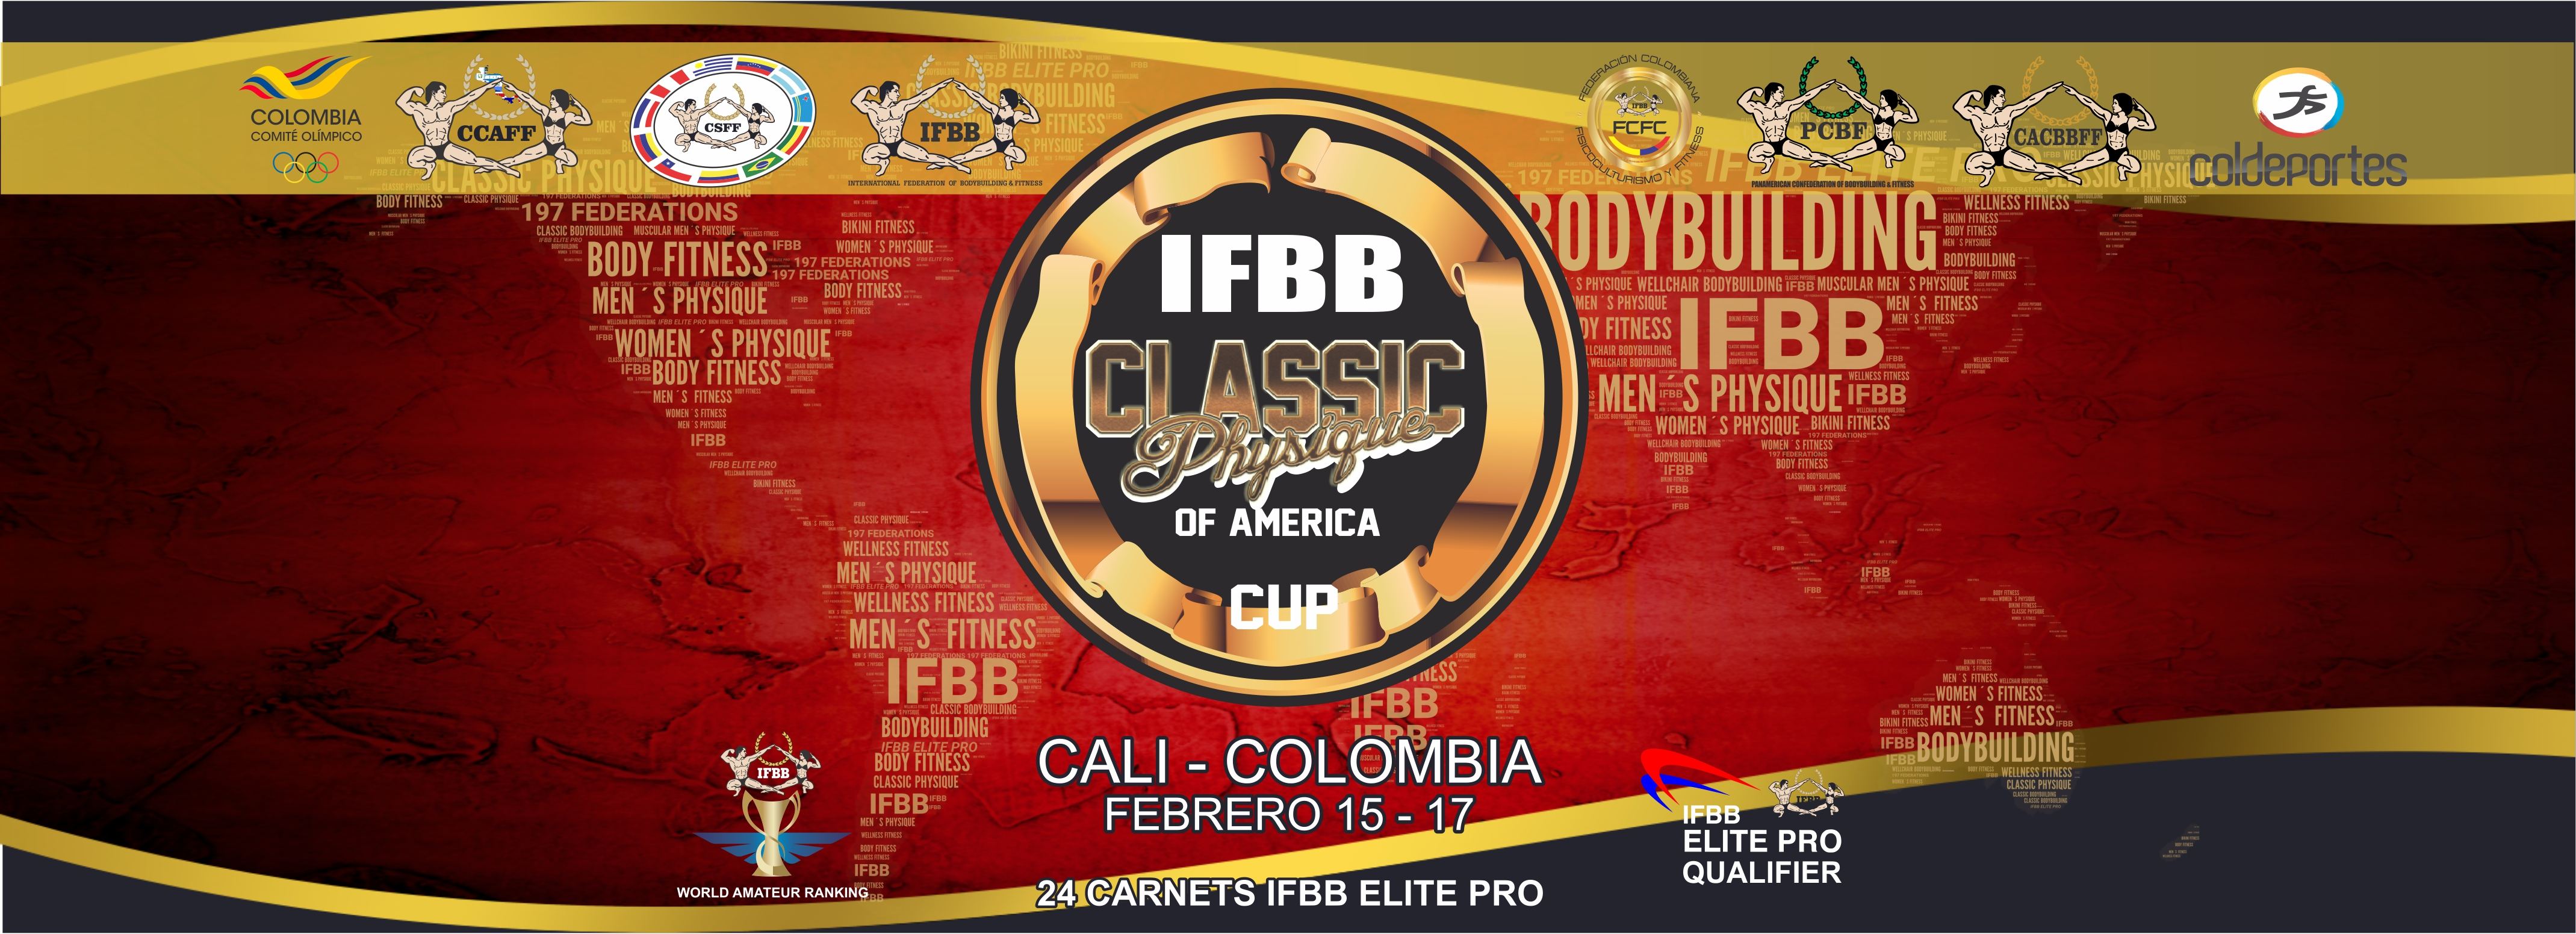 Classic Physique of America IFBB 2019 Abierto a Europeos